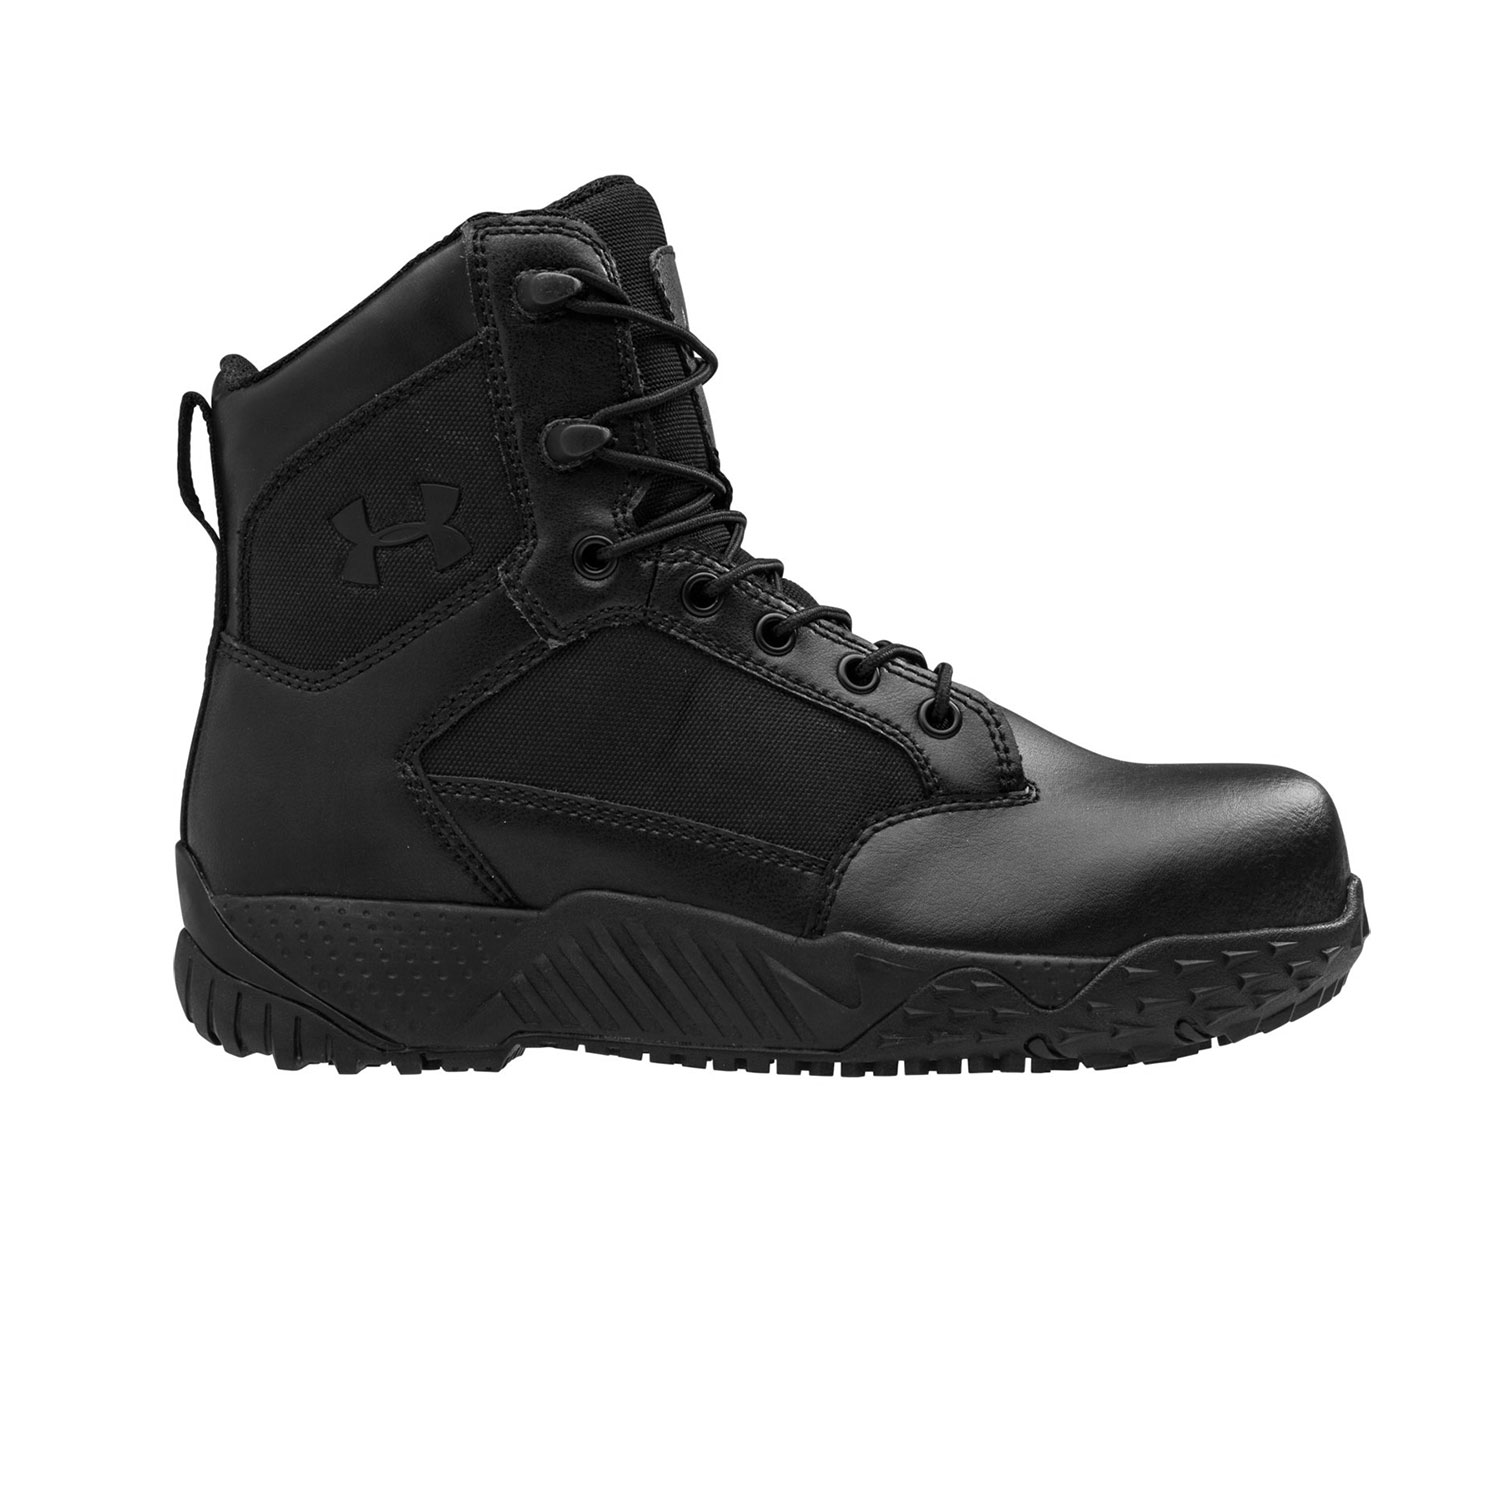 Under Armour Womens Stellar Tac Protect Composite Toe Boot